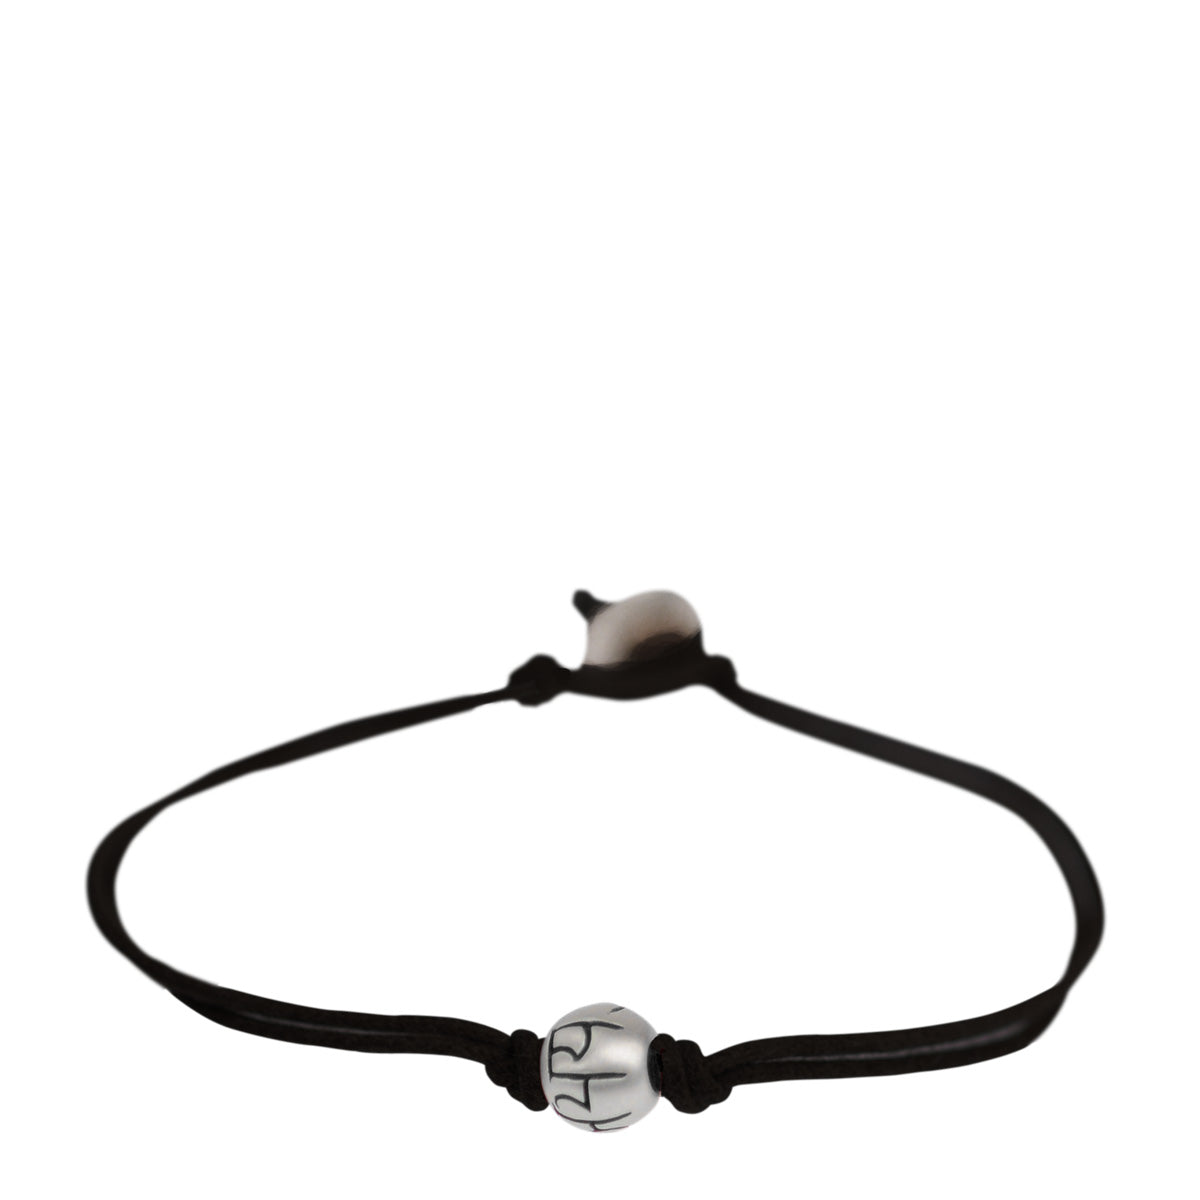 Men's Sterling Silver Fearlessness Bead Bracelet on Black Cord with Button Closure